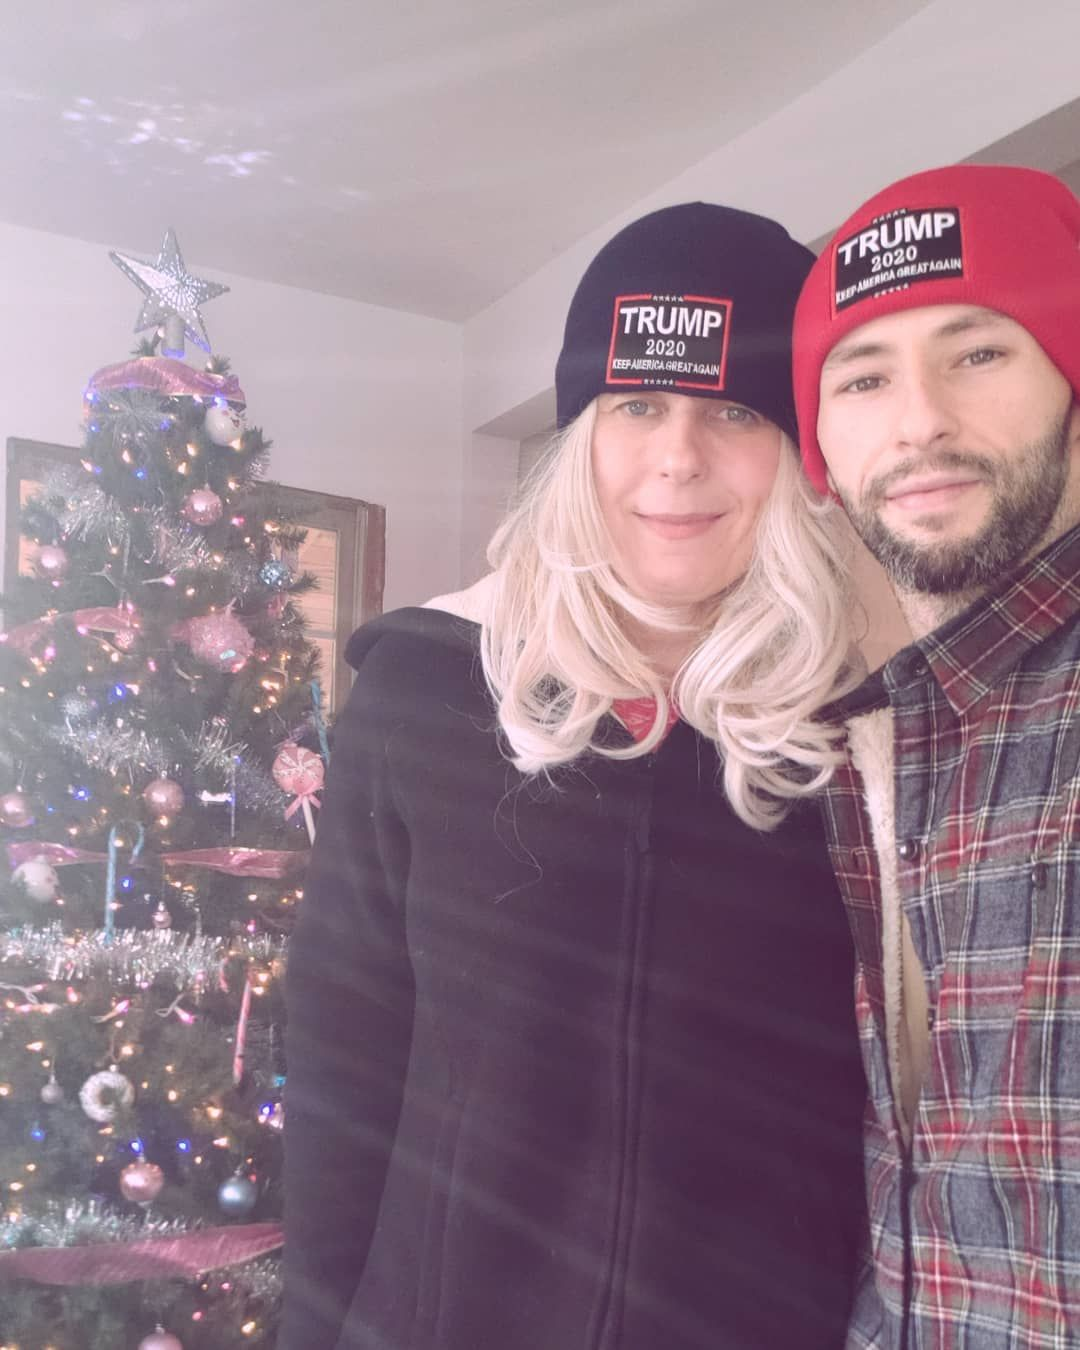 Beautiful Christmas with our Donald J. Trump #trump2020 beanies on.  #president #presidenttrump #trump